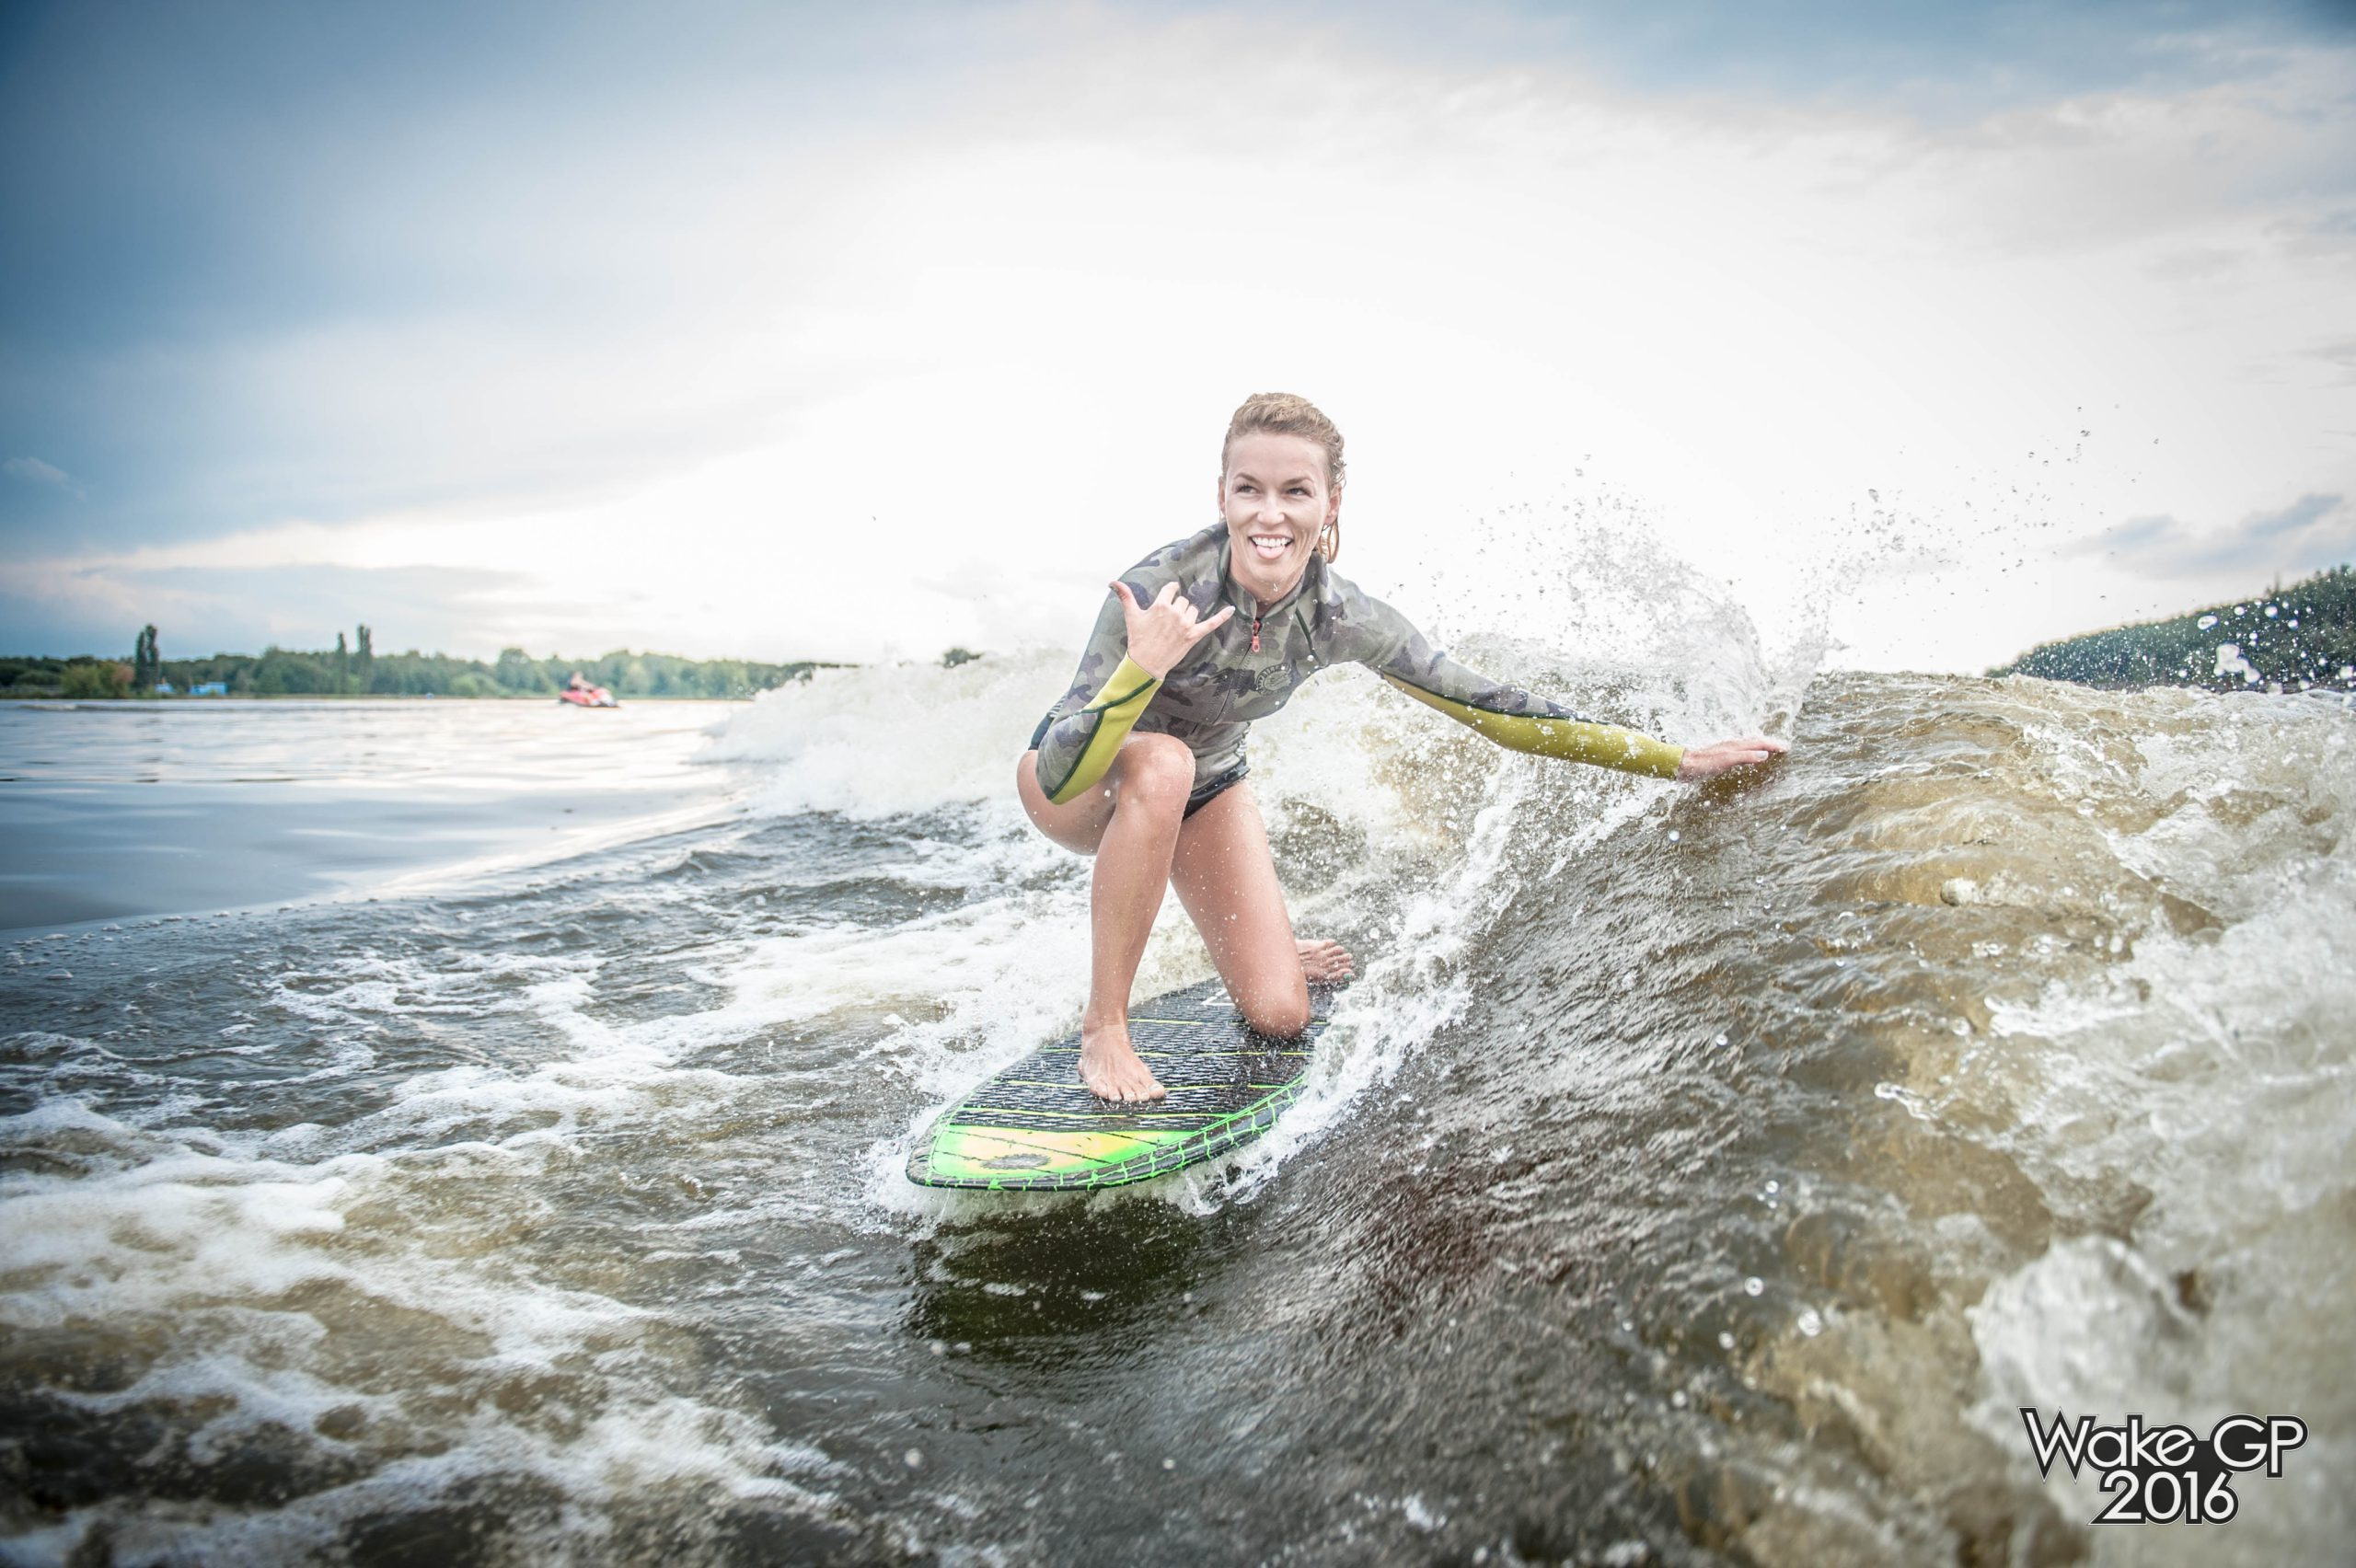 fot Pleasure Photo dla WakeGP by Mastercraft Polska2